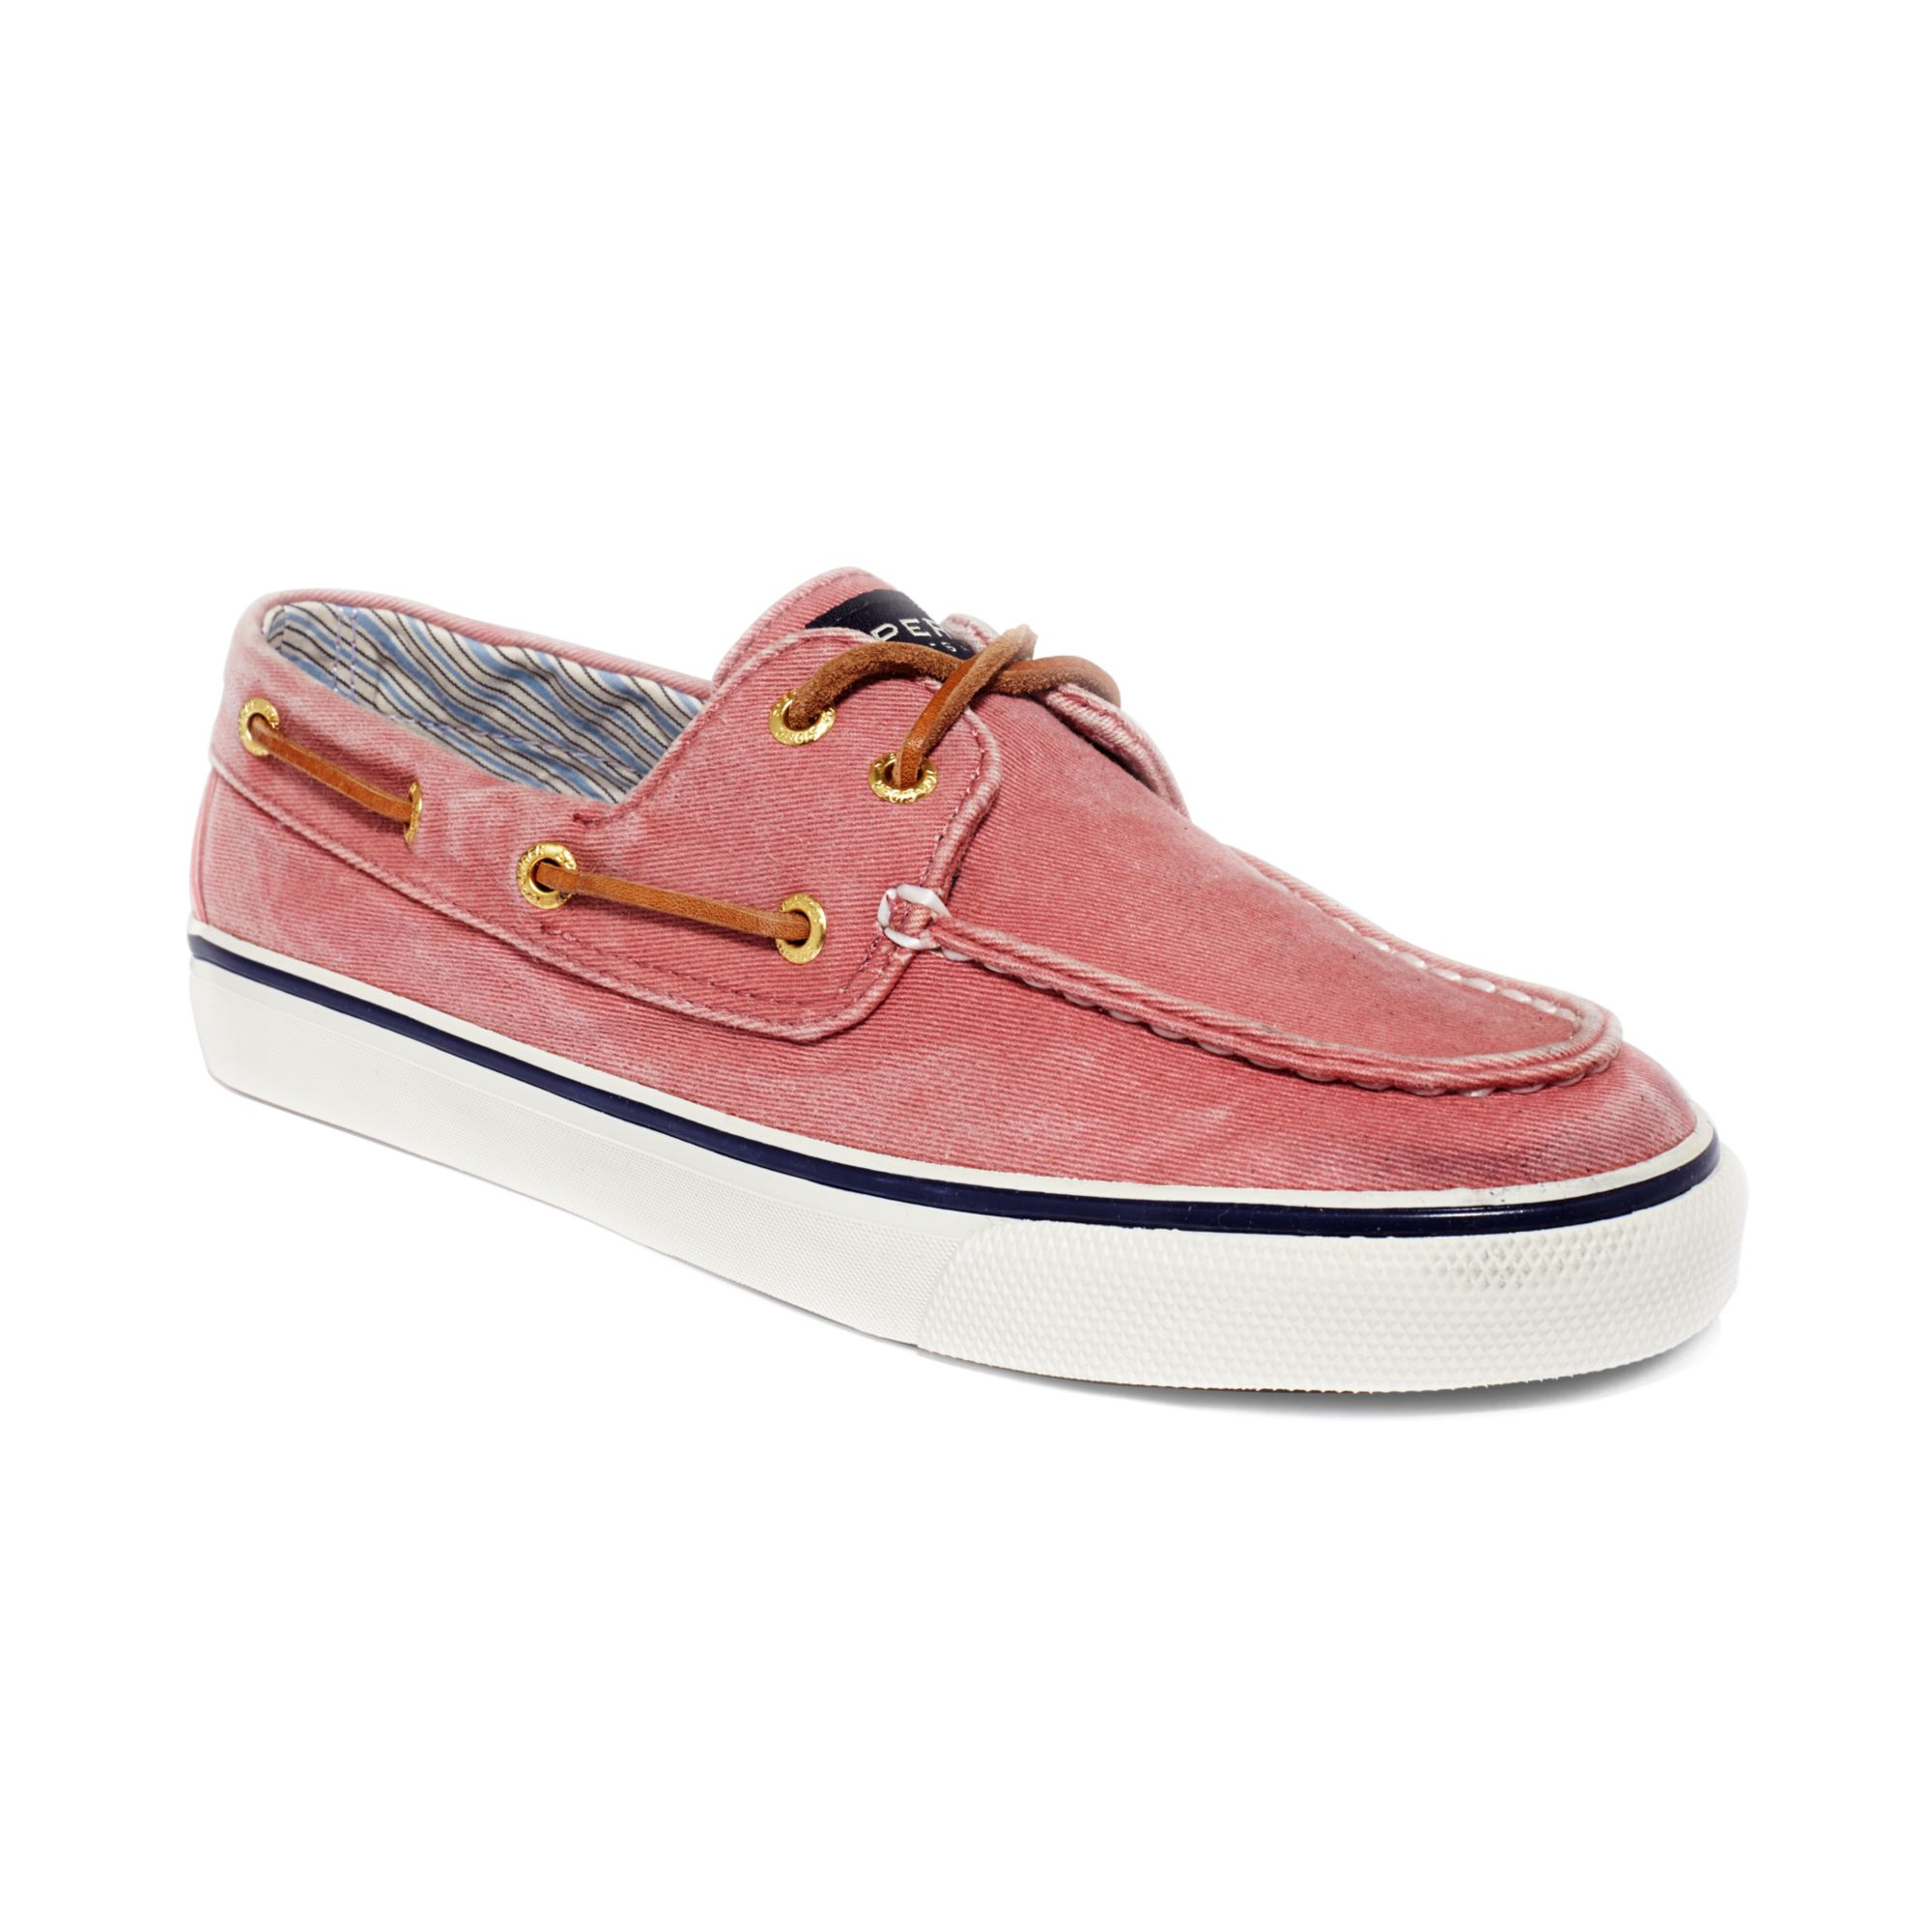 sperry top sider bahama boat shoes in pink wased